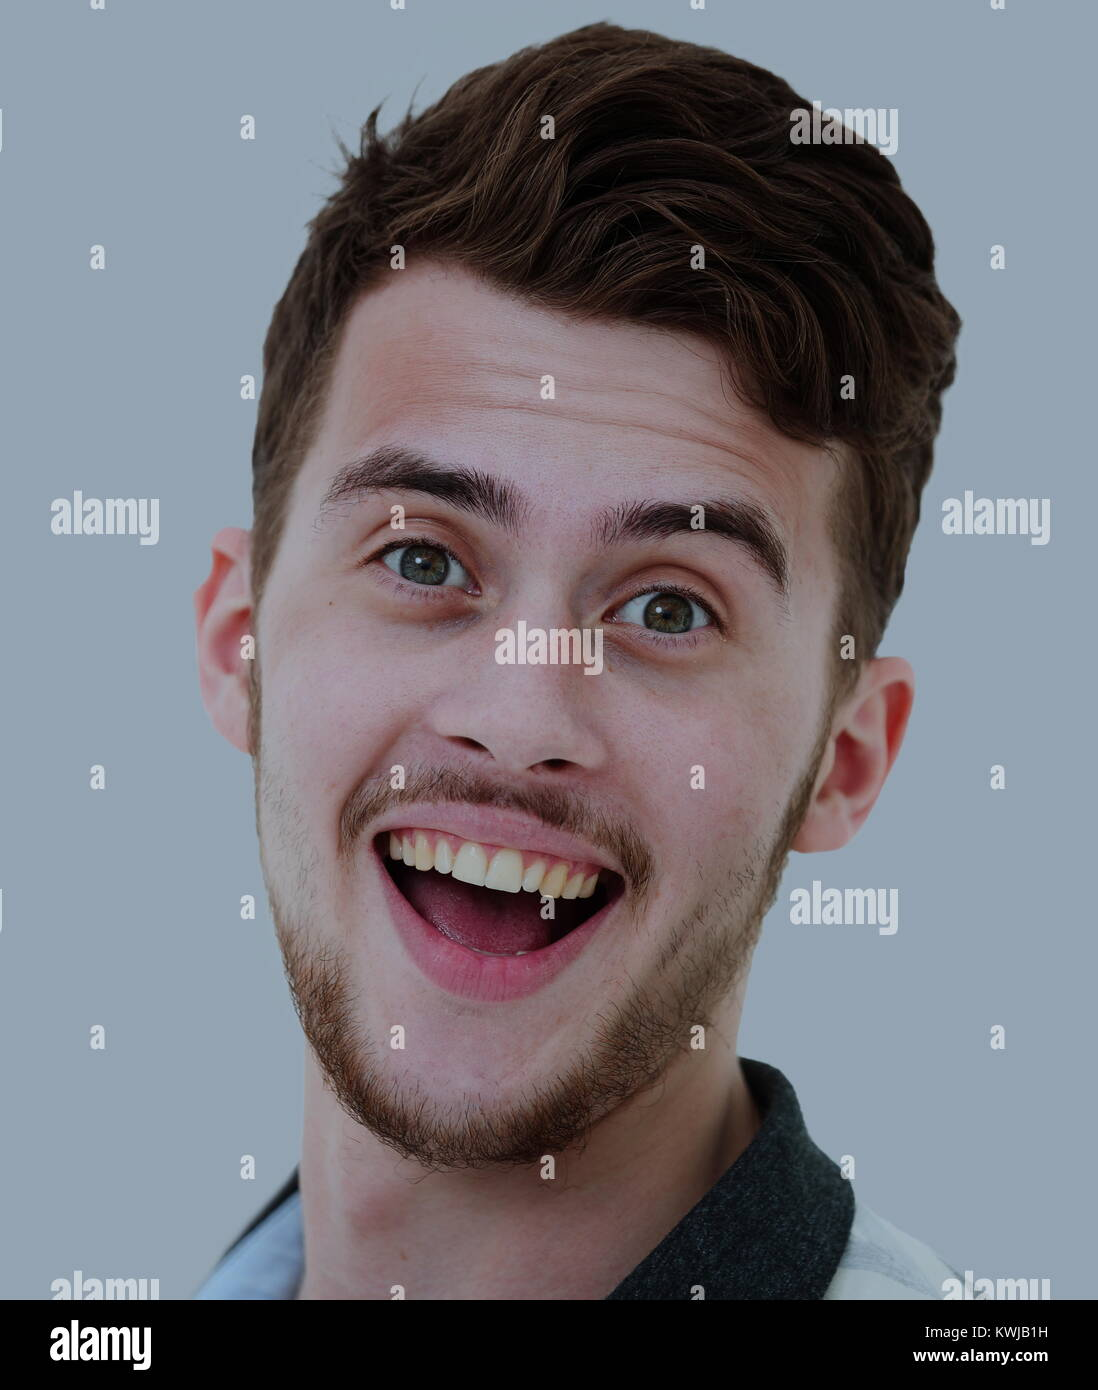 Close-up portrait of attractive young man on gray background - Stock Image